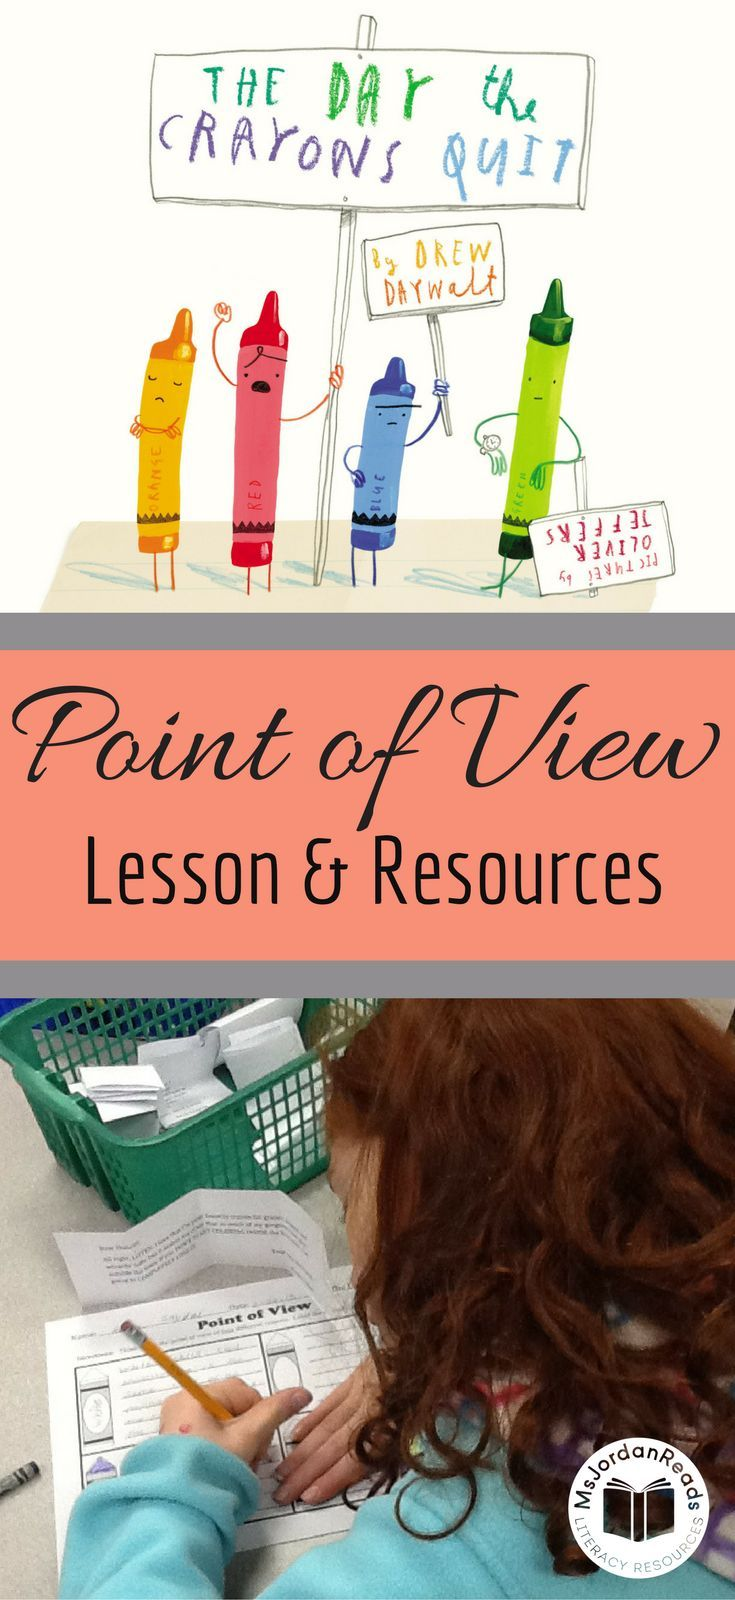 Exploring Perspective and Point of View | A blog post from @MsJordanReads sharing a lesson & free resources for teaching point of view in texts. This lesson uses the mentor text, The Day the Crayons Quit.